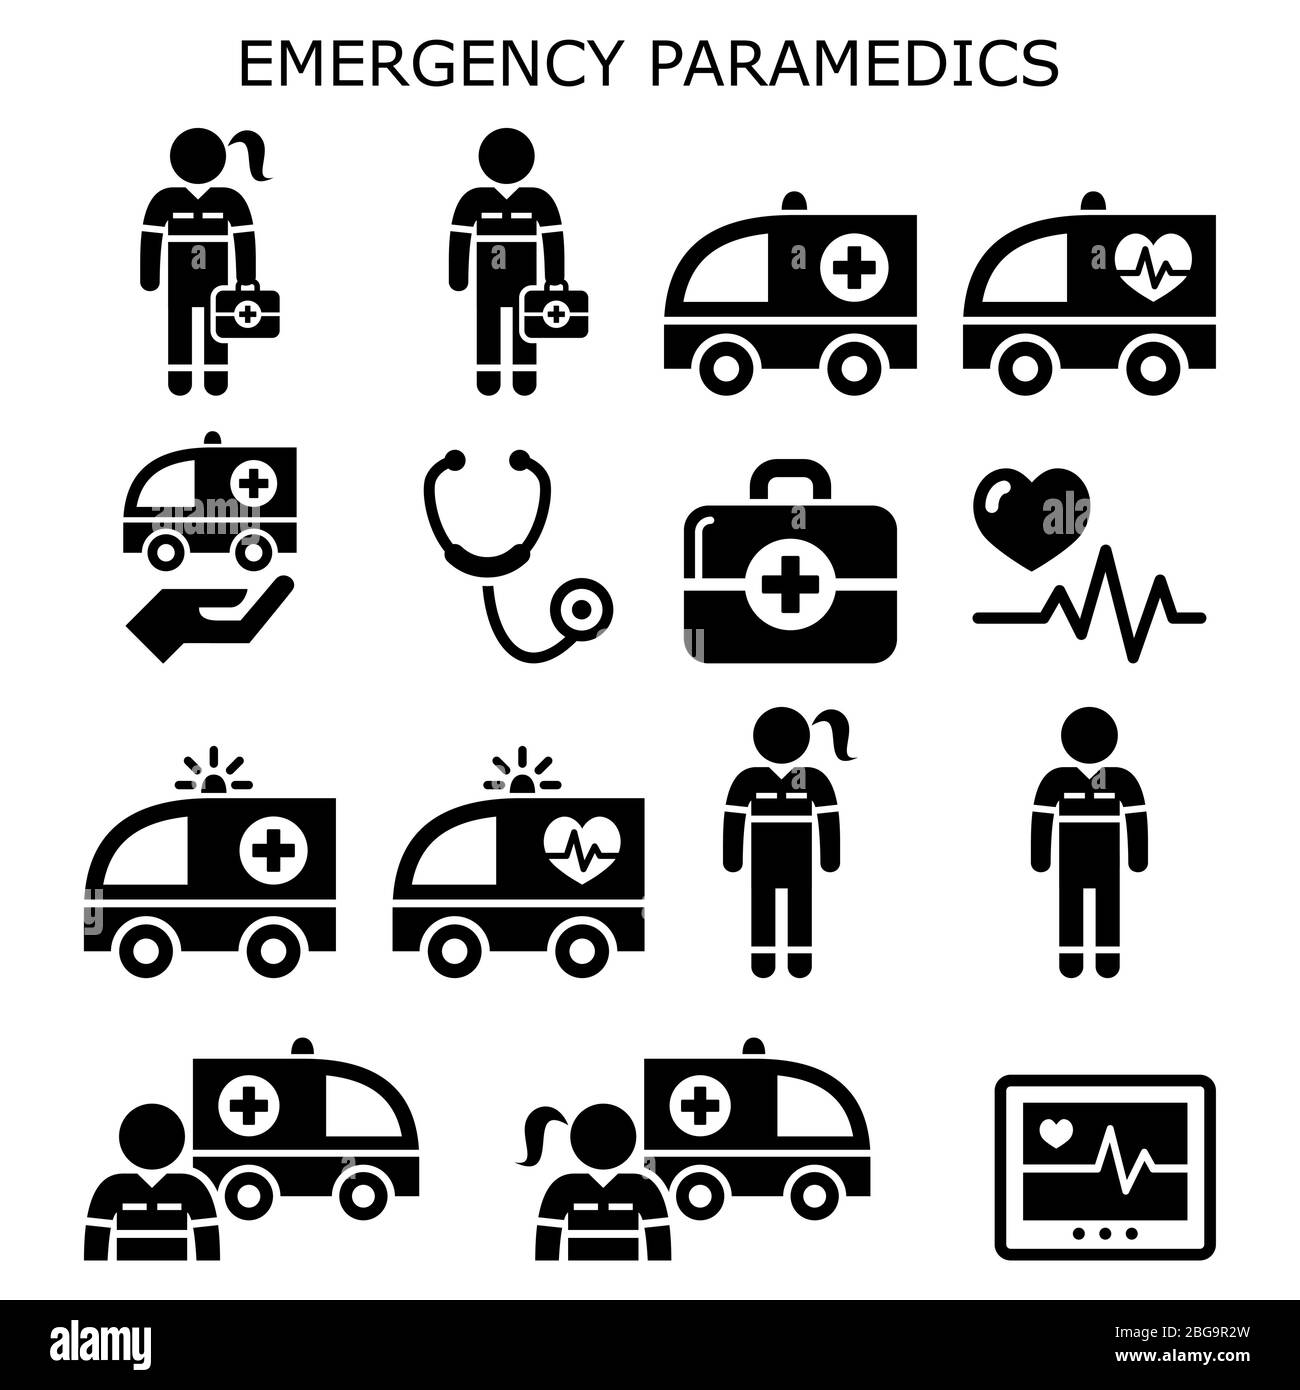 Emergency paramedics, ambulance vector icons set - healthcare medical workers Stock Vector